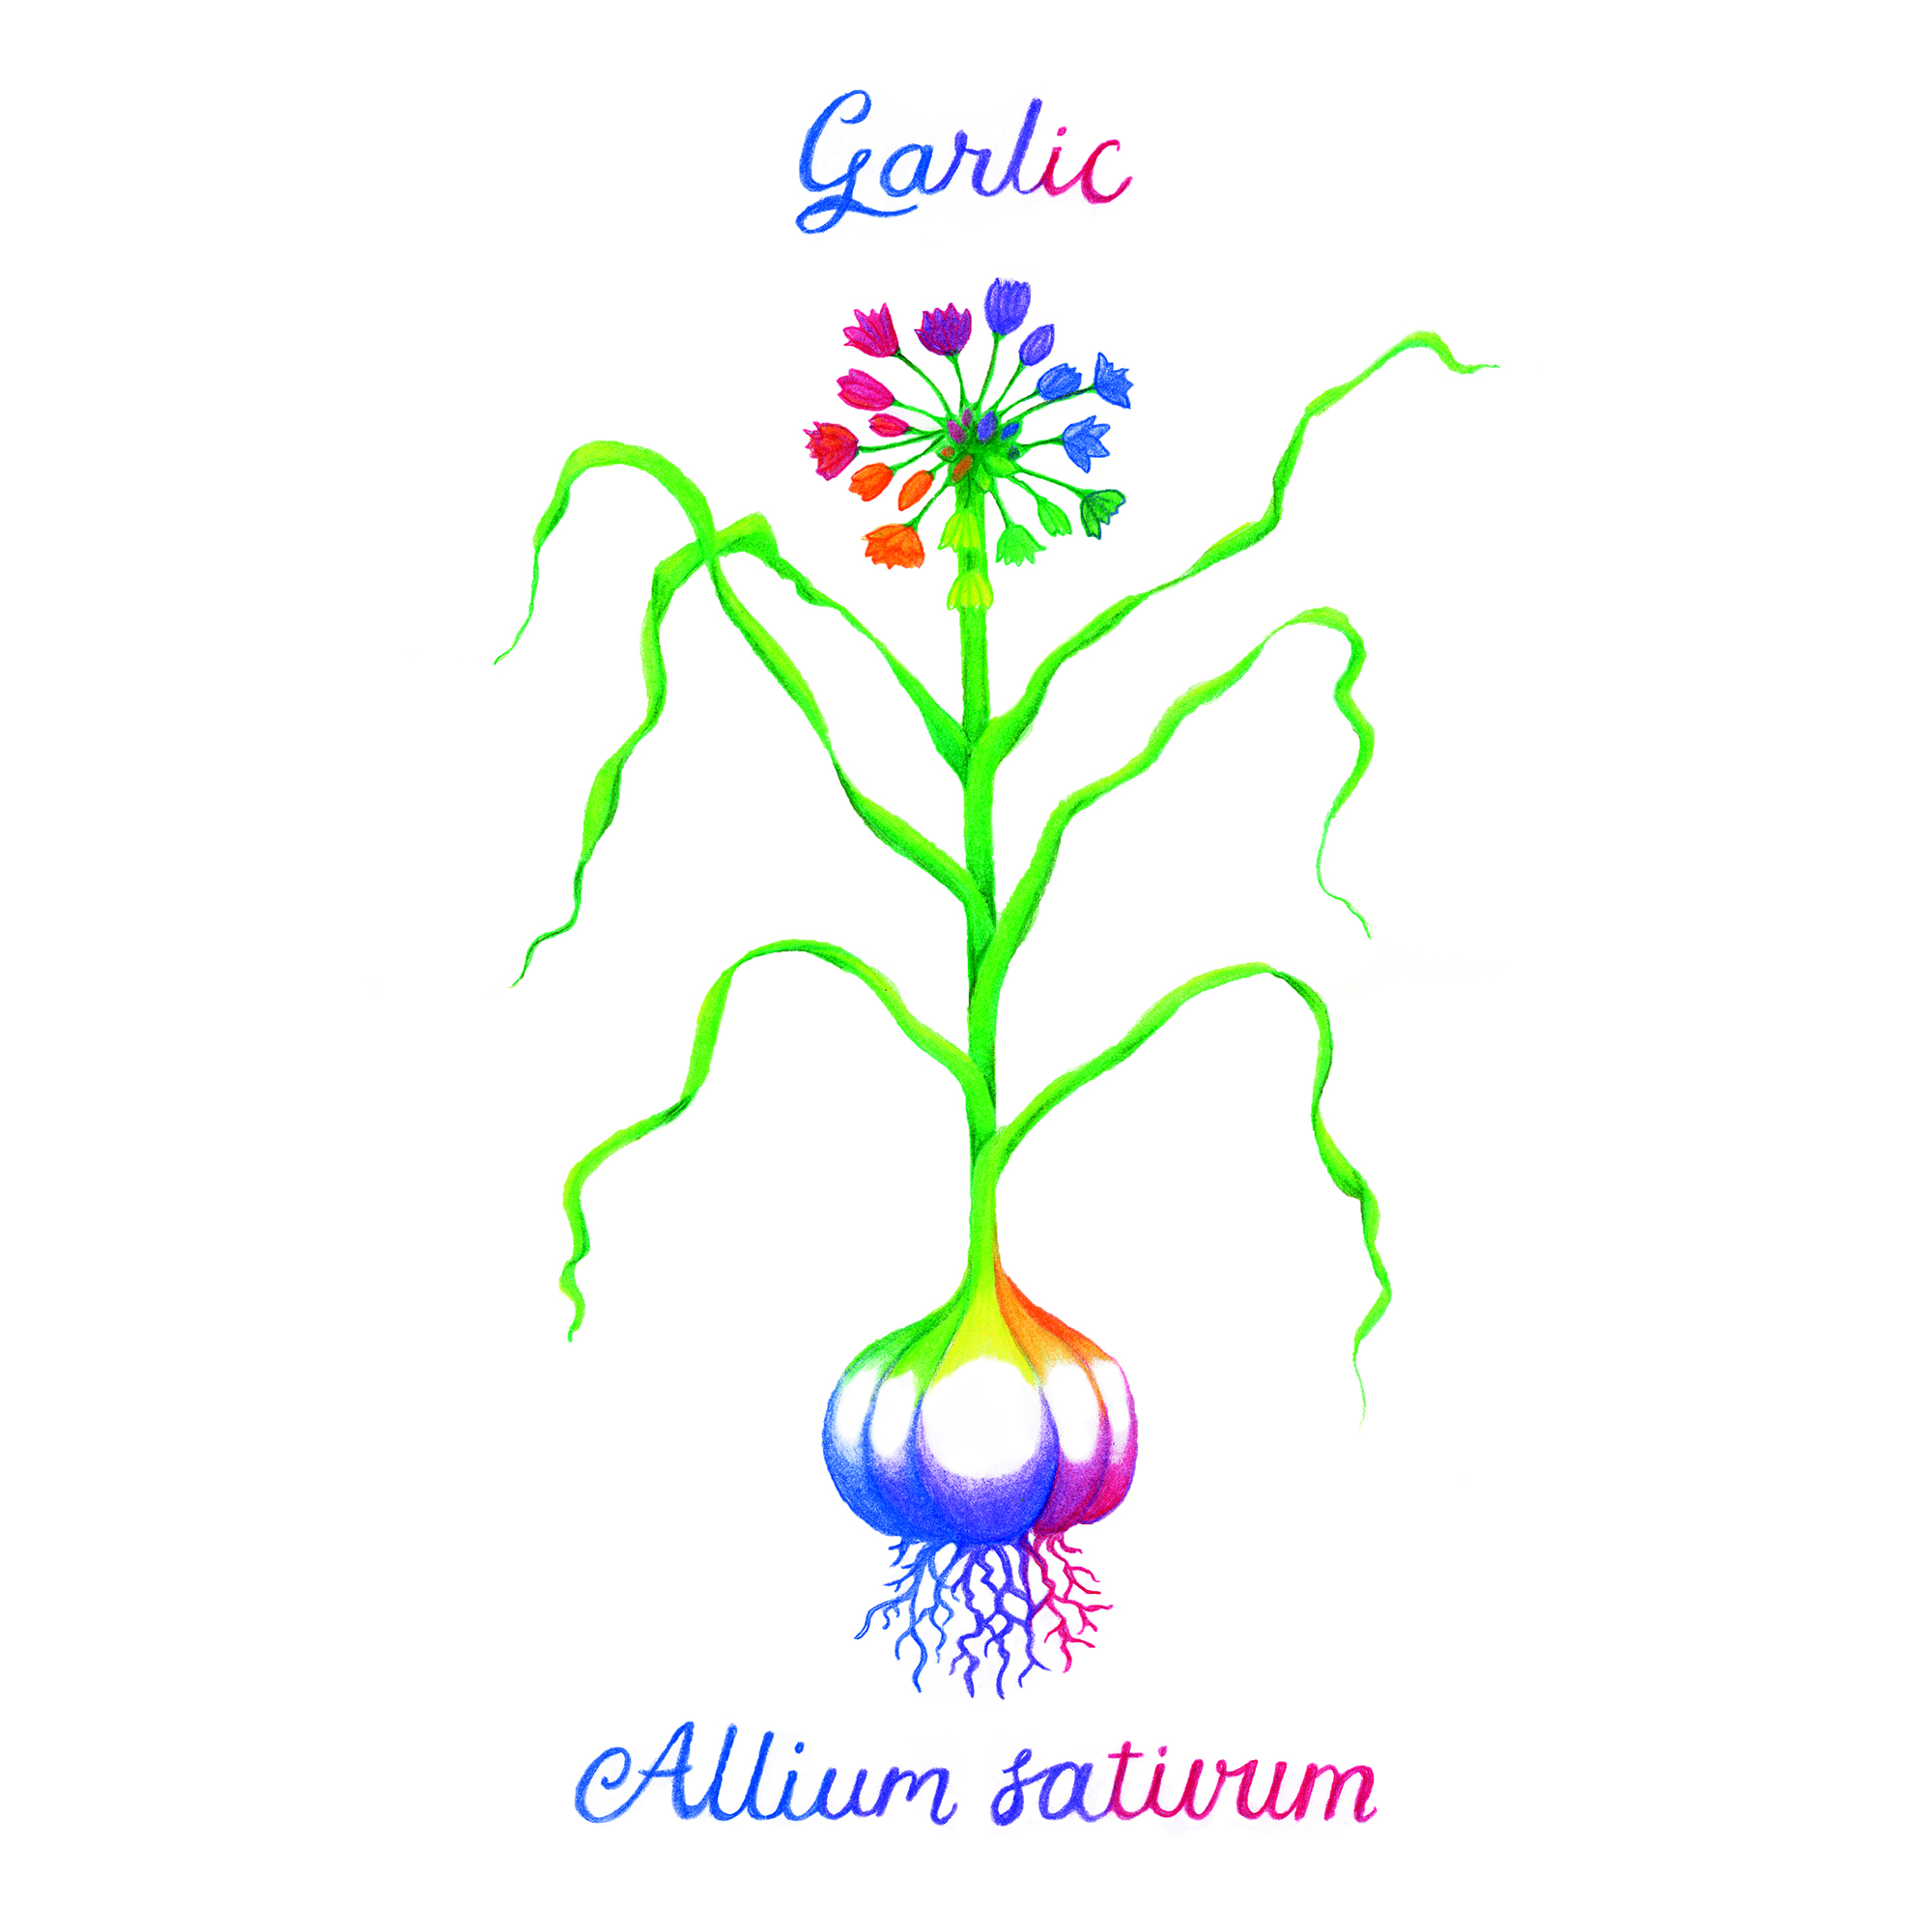 Rainbow Garlic Illustration